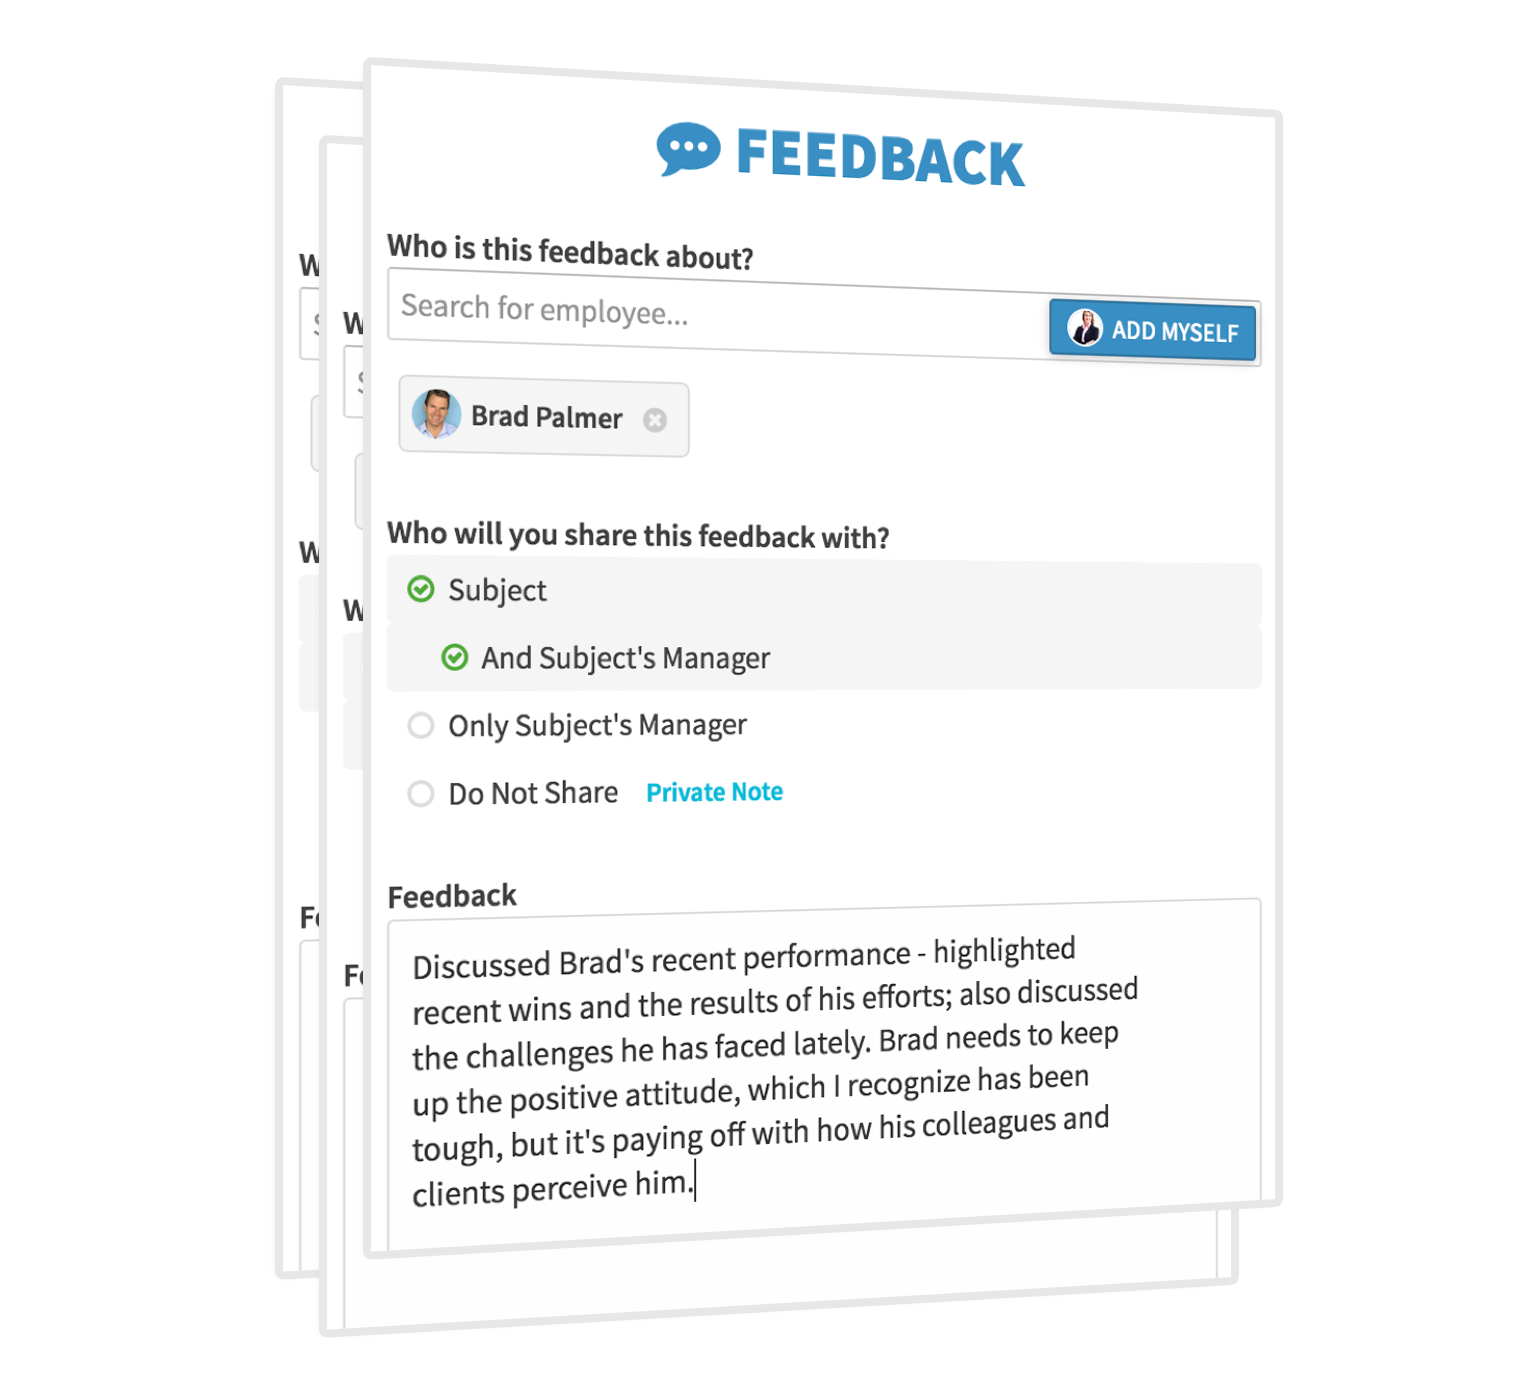 Provide Timely 1-1 Feedback - Document and share important feedback in the moment, rather than waiting until